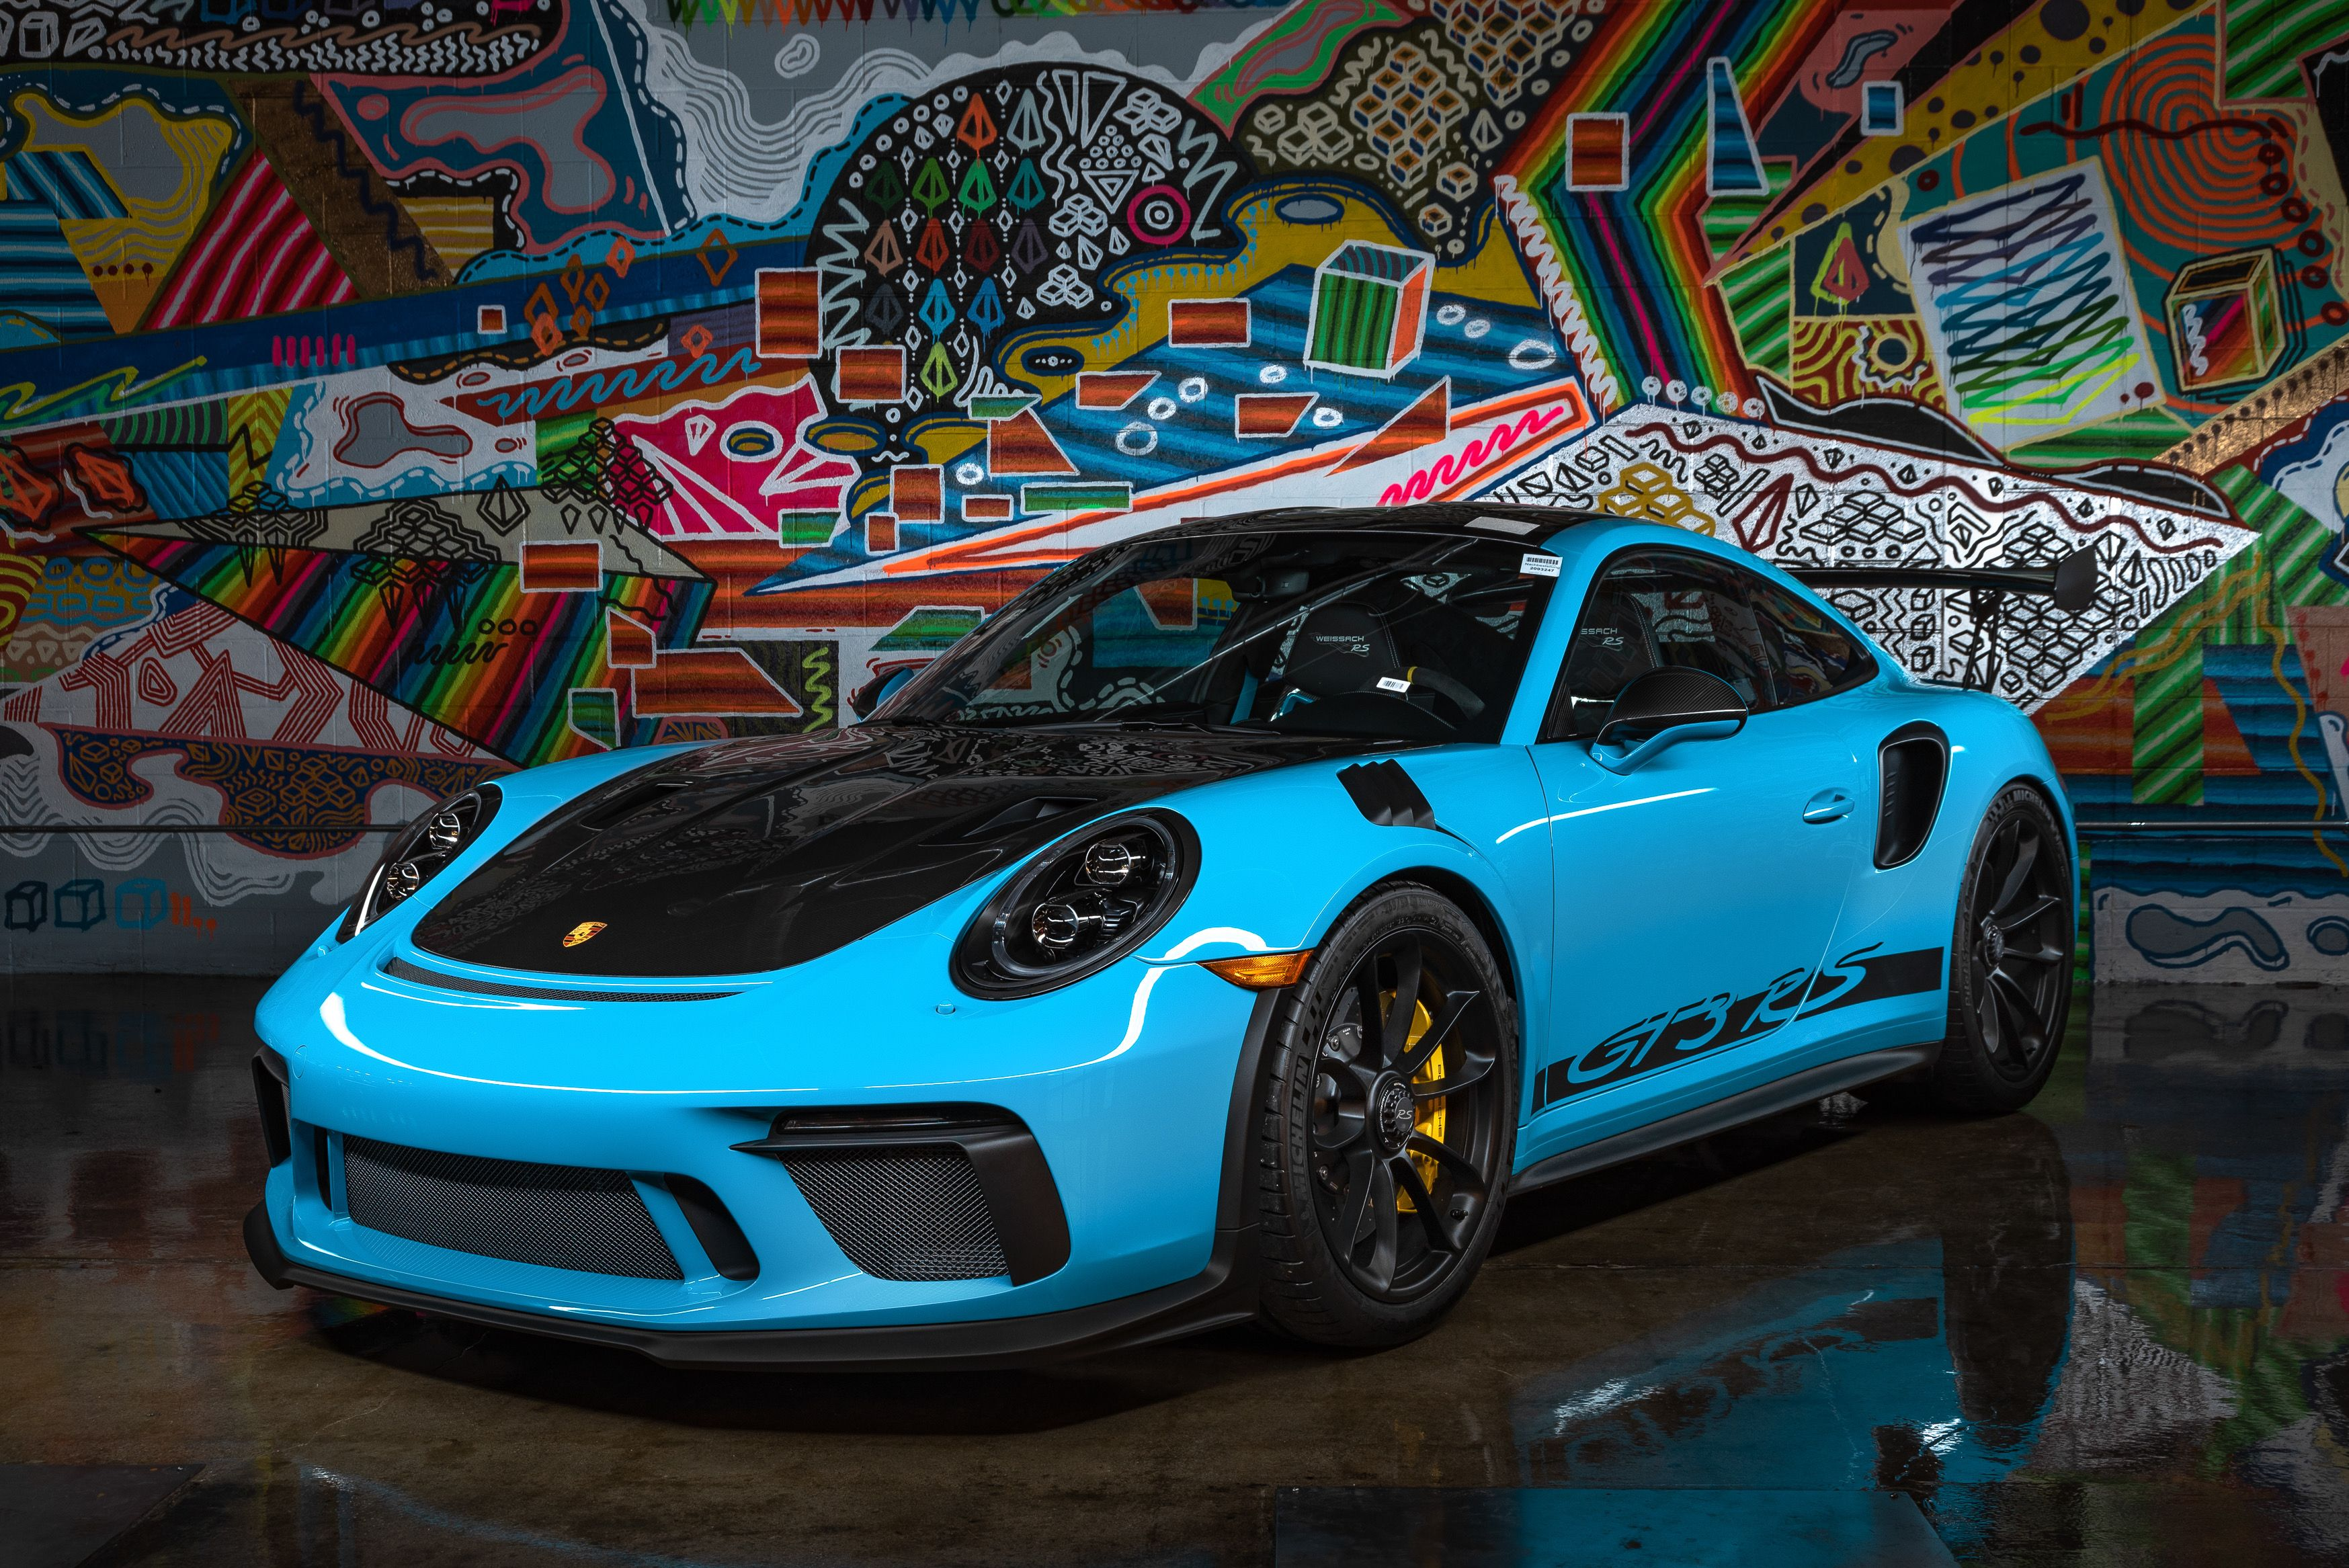 Our SPECtacular 2019 #Porsche GT3 RS in Miami Blue over ...